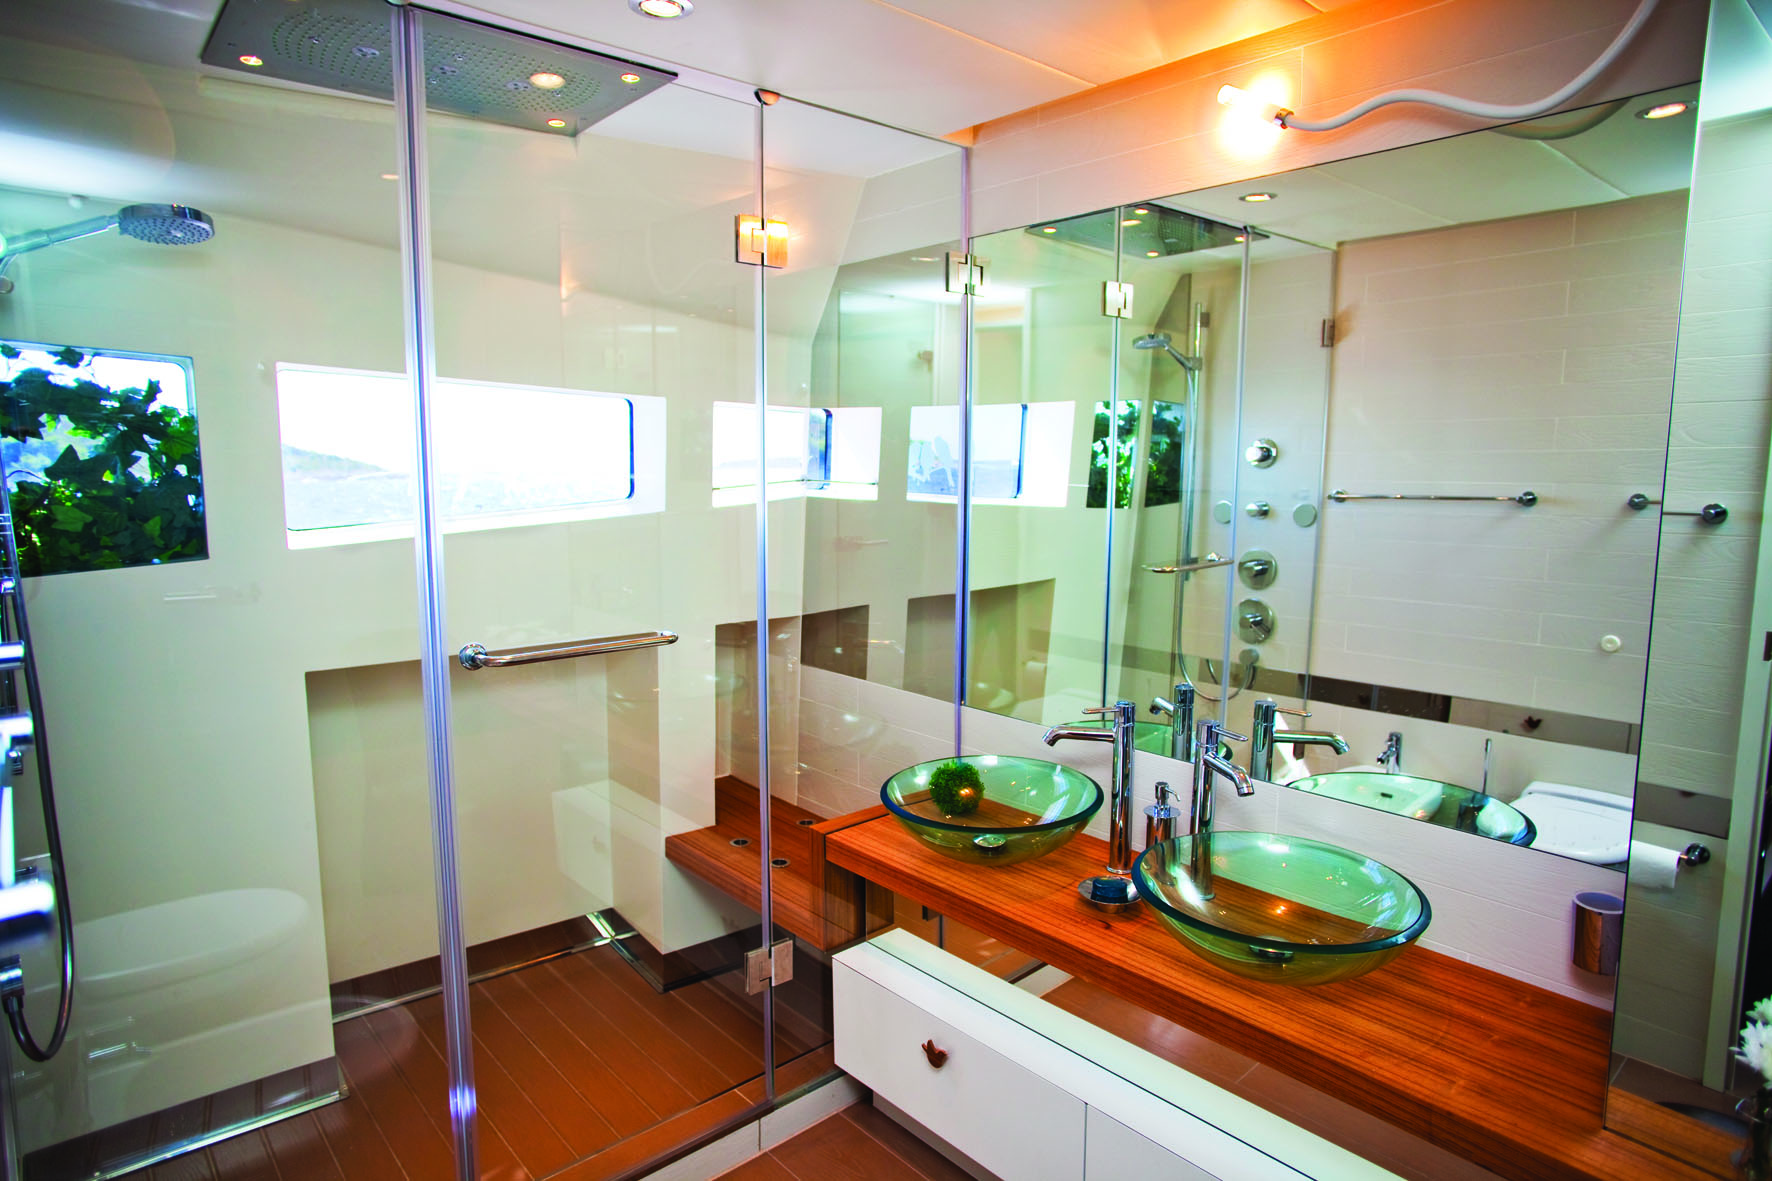 Motor Yacht JoyMe Nature Cabin Bathroom - Interior by Marijana Radovic